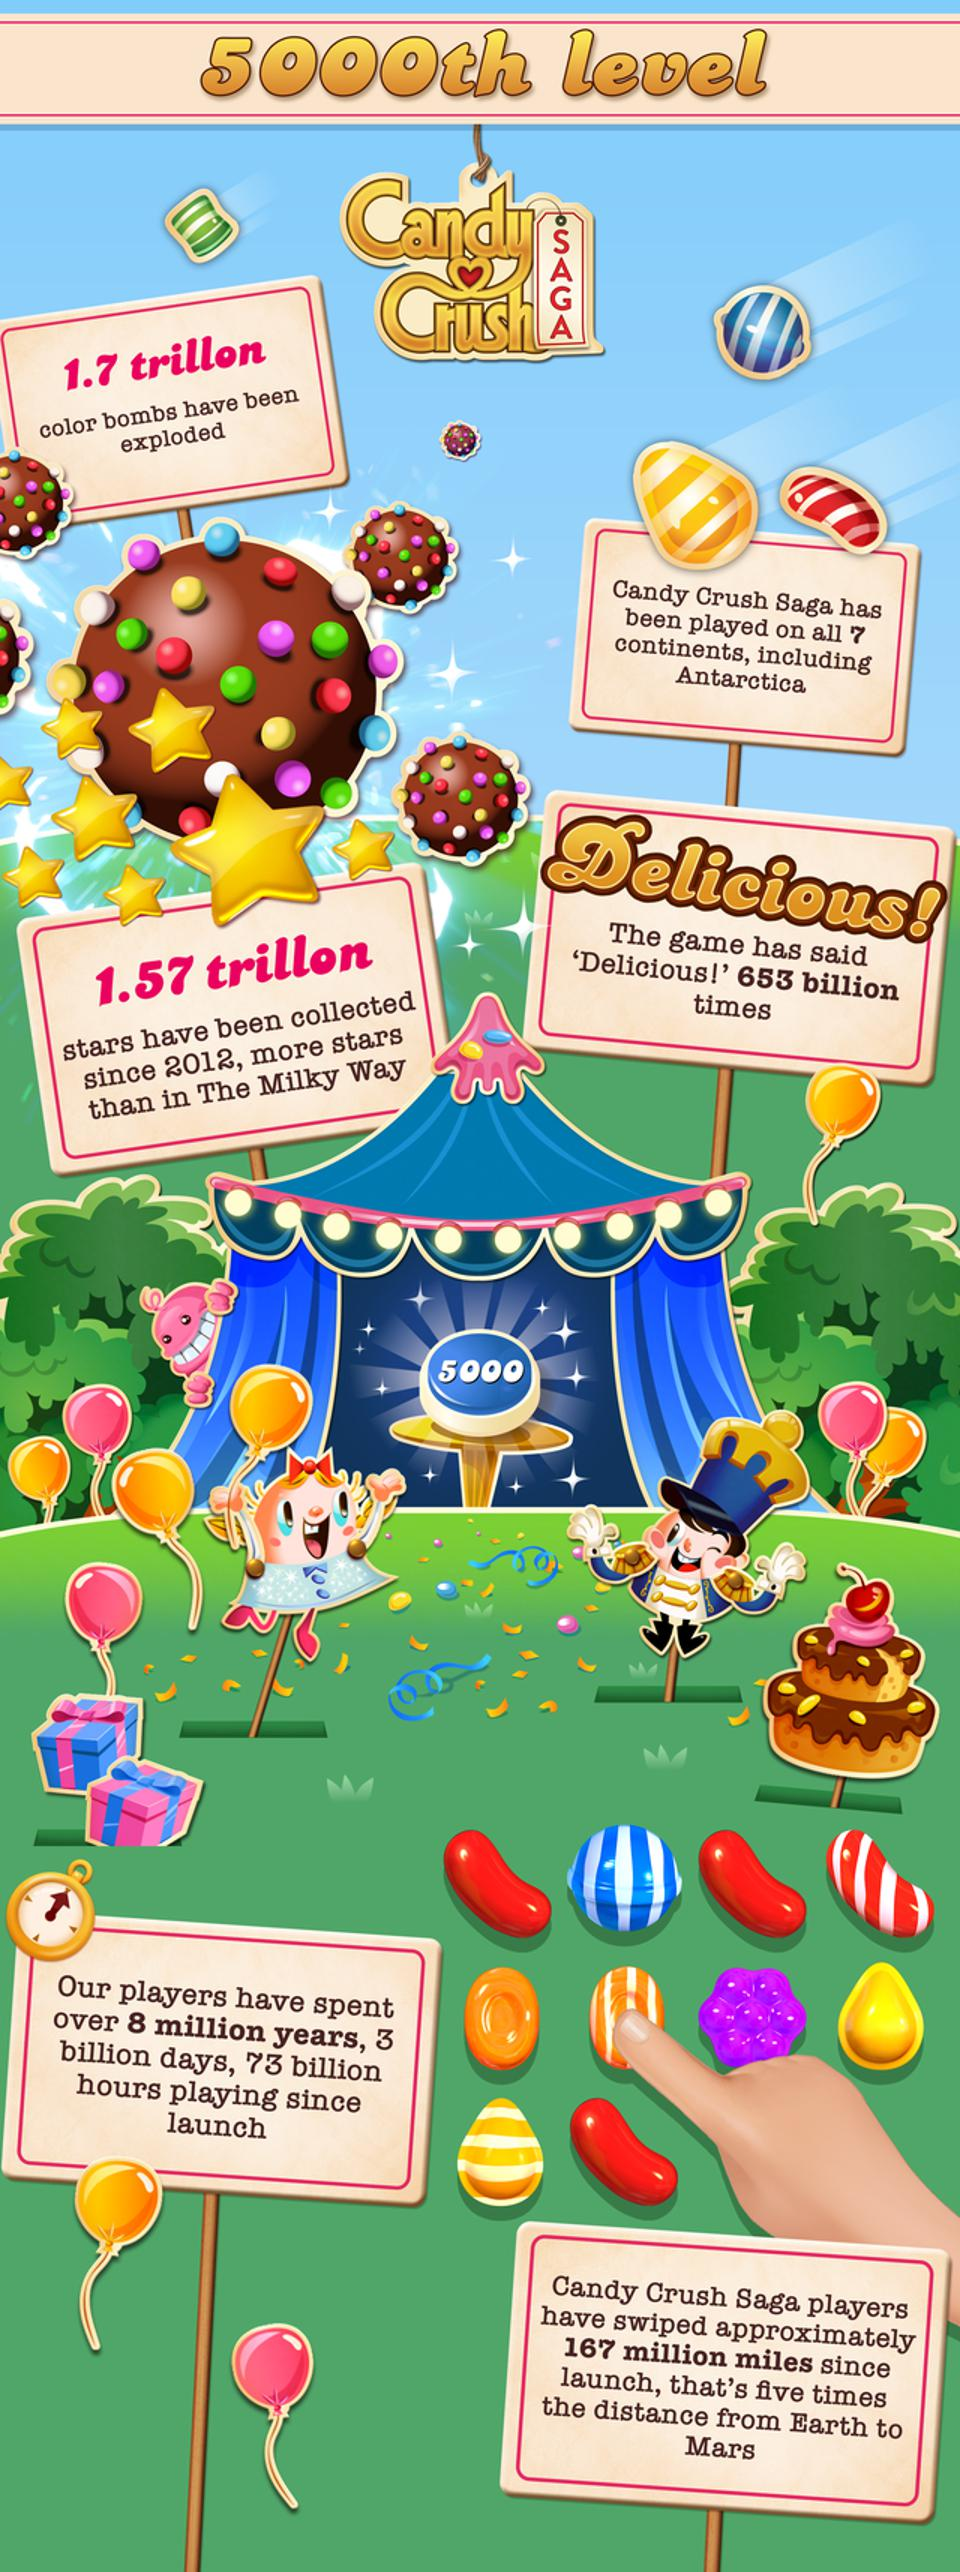 A series of Candy Crush facts regarding the mobile game's user base.